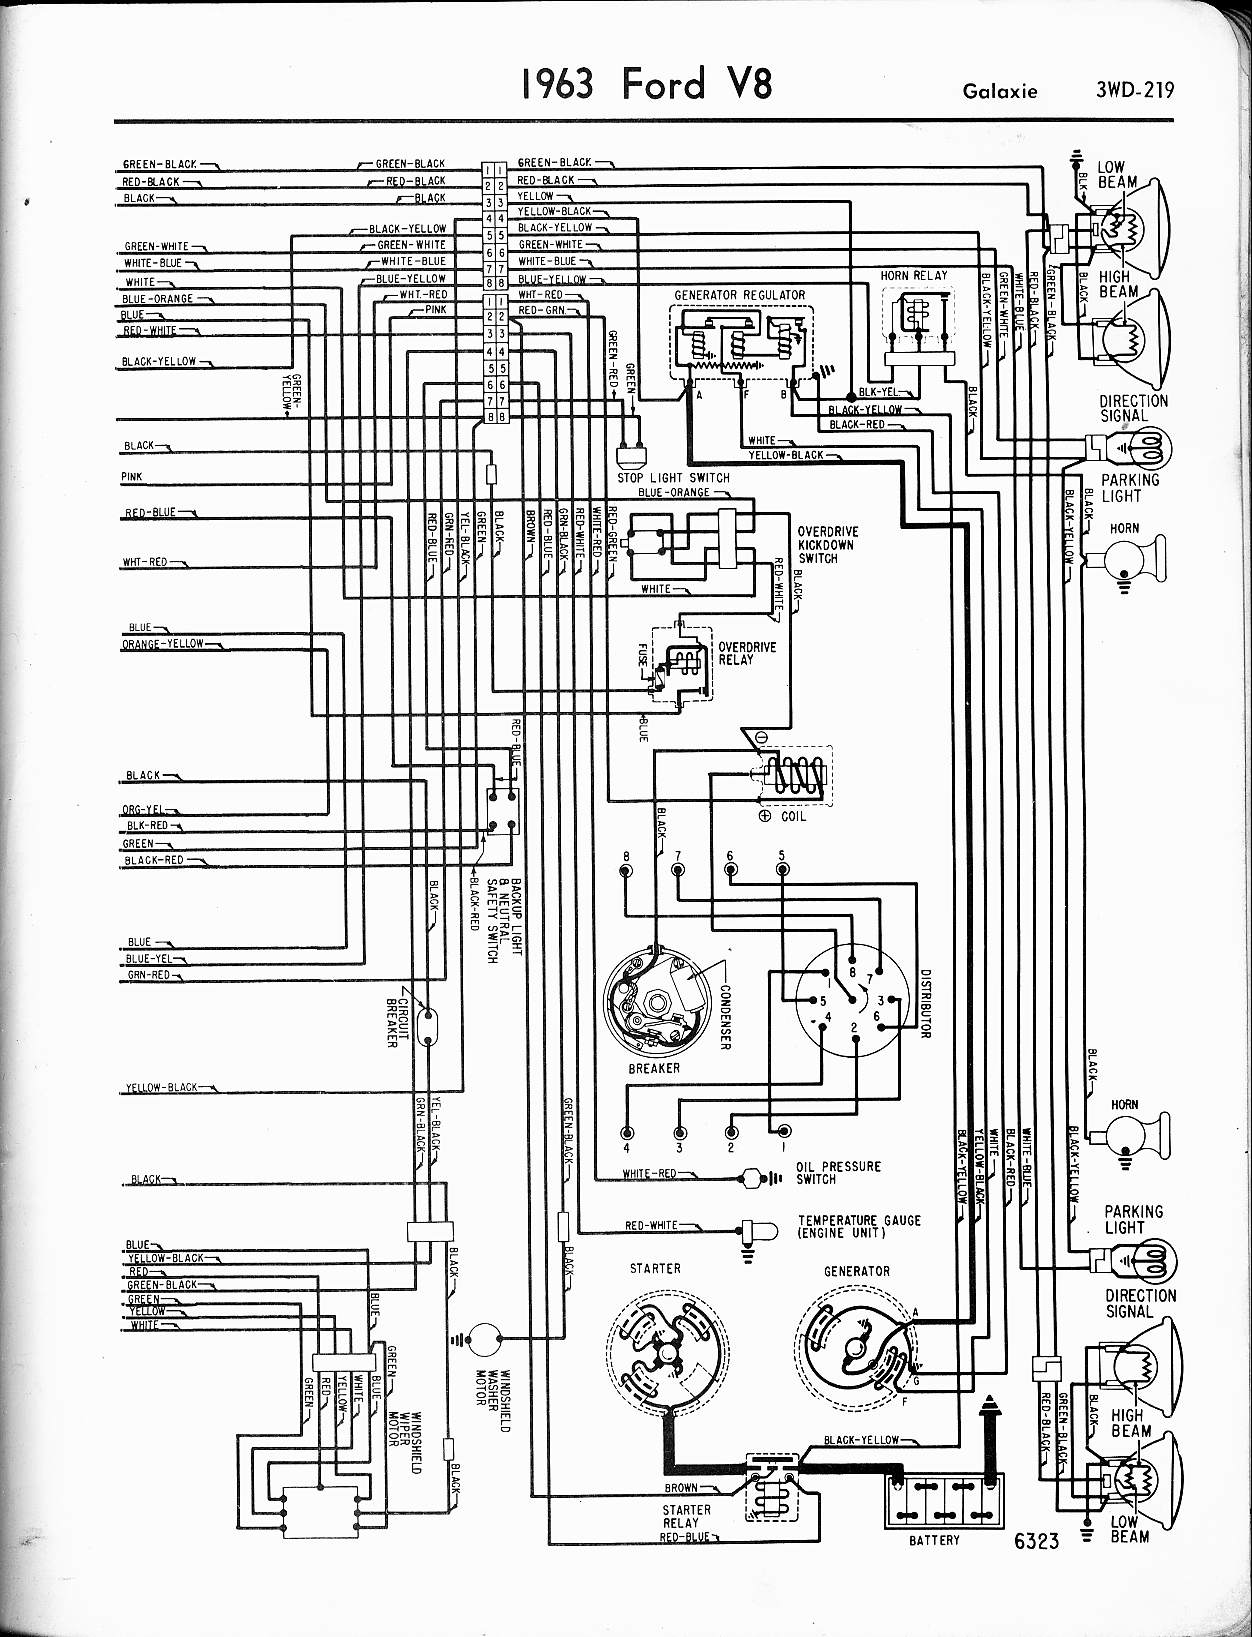 1968 Ford Galaxie Wiring Diagram Data Wiring Schema 1970 Ford 1970 Fairlane  Wiring Diagram